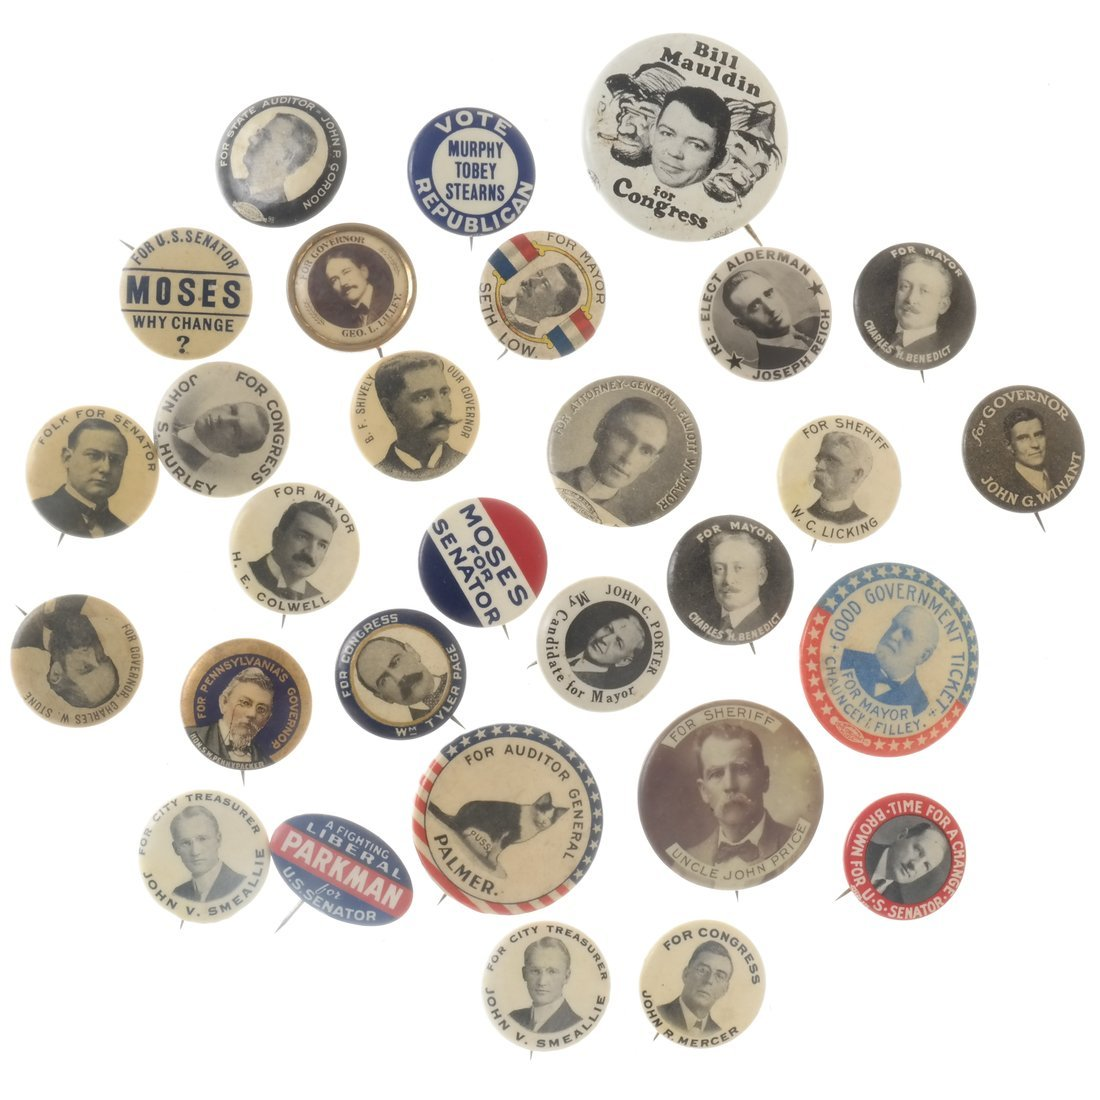 Twenty-nine Various Local Election Buttons